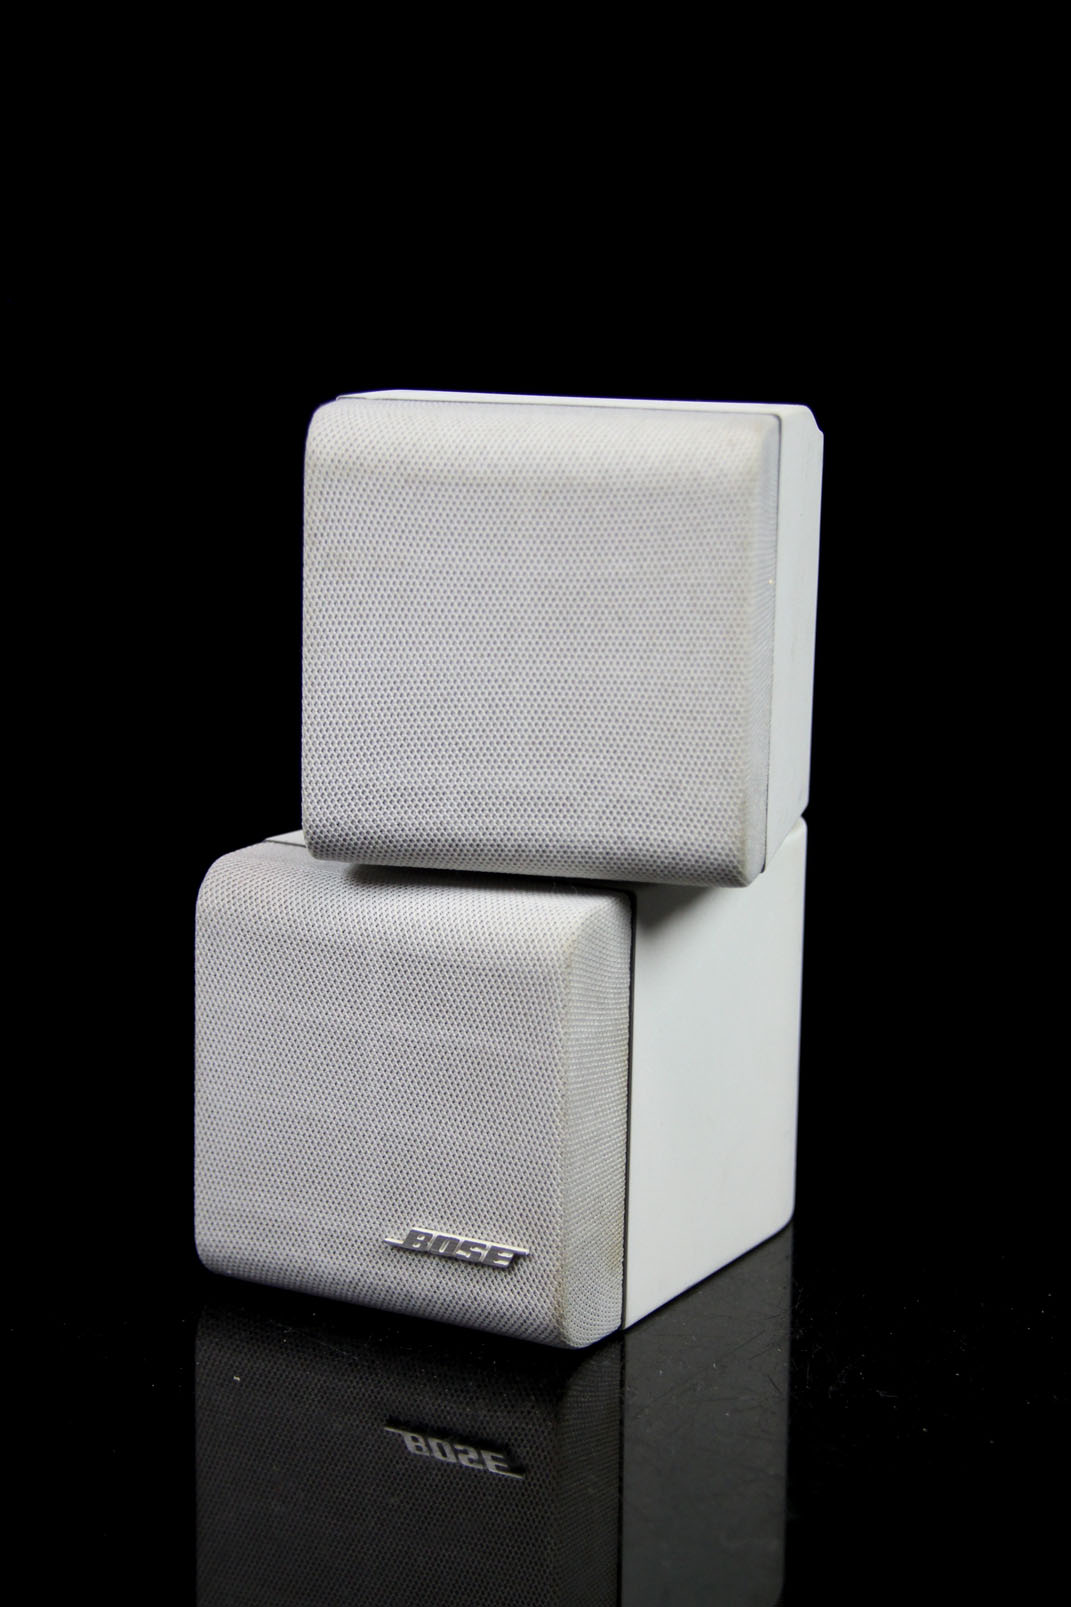 bose stereo lautsprecher weiss acoustimass speaker doppel cube satelliten box ebay. Black Bedroom Furniture Sets. Home Design Ideas